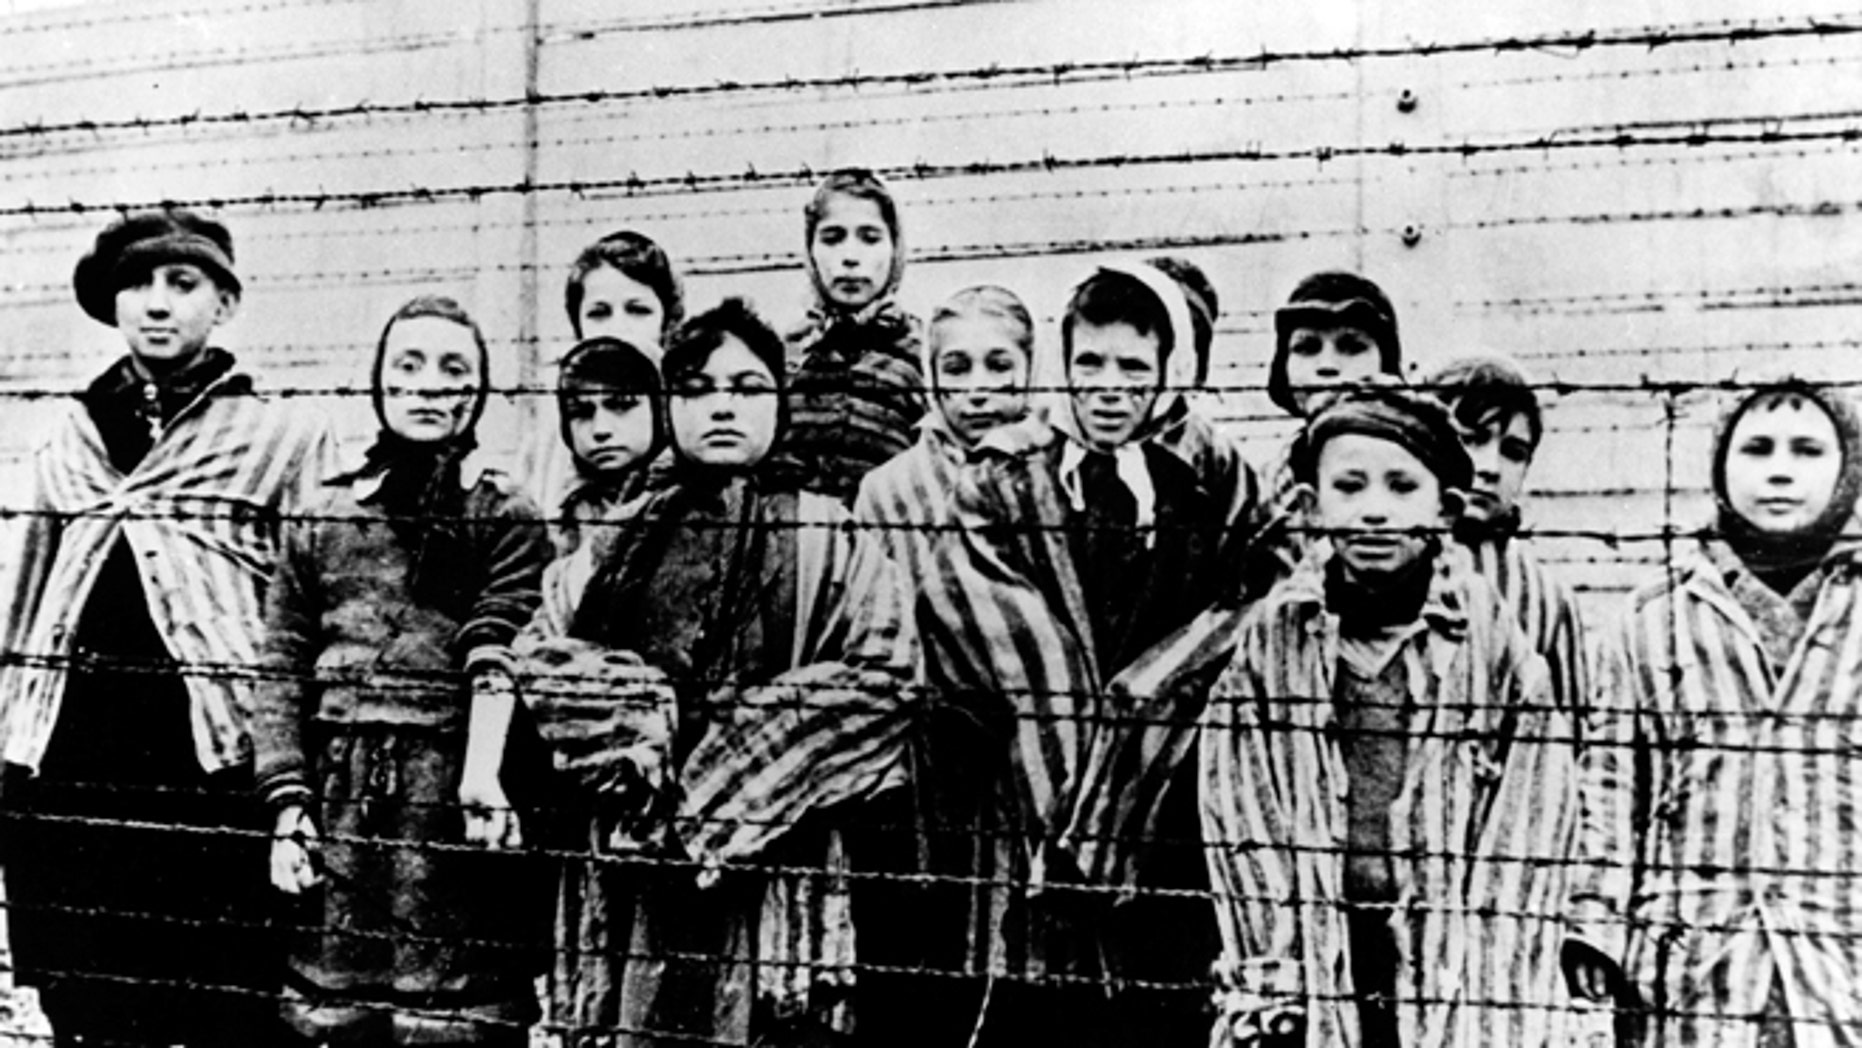 FILE - A picture taken just after the liberation by the Soviet army in January, 1945, shows a group of children wearing concentration camp uniforms behind barbed wire fencing in the Auschwitz Nazi concentration camp. (AP)